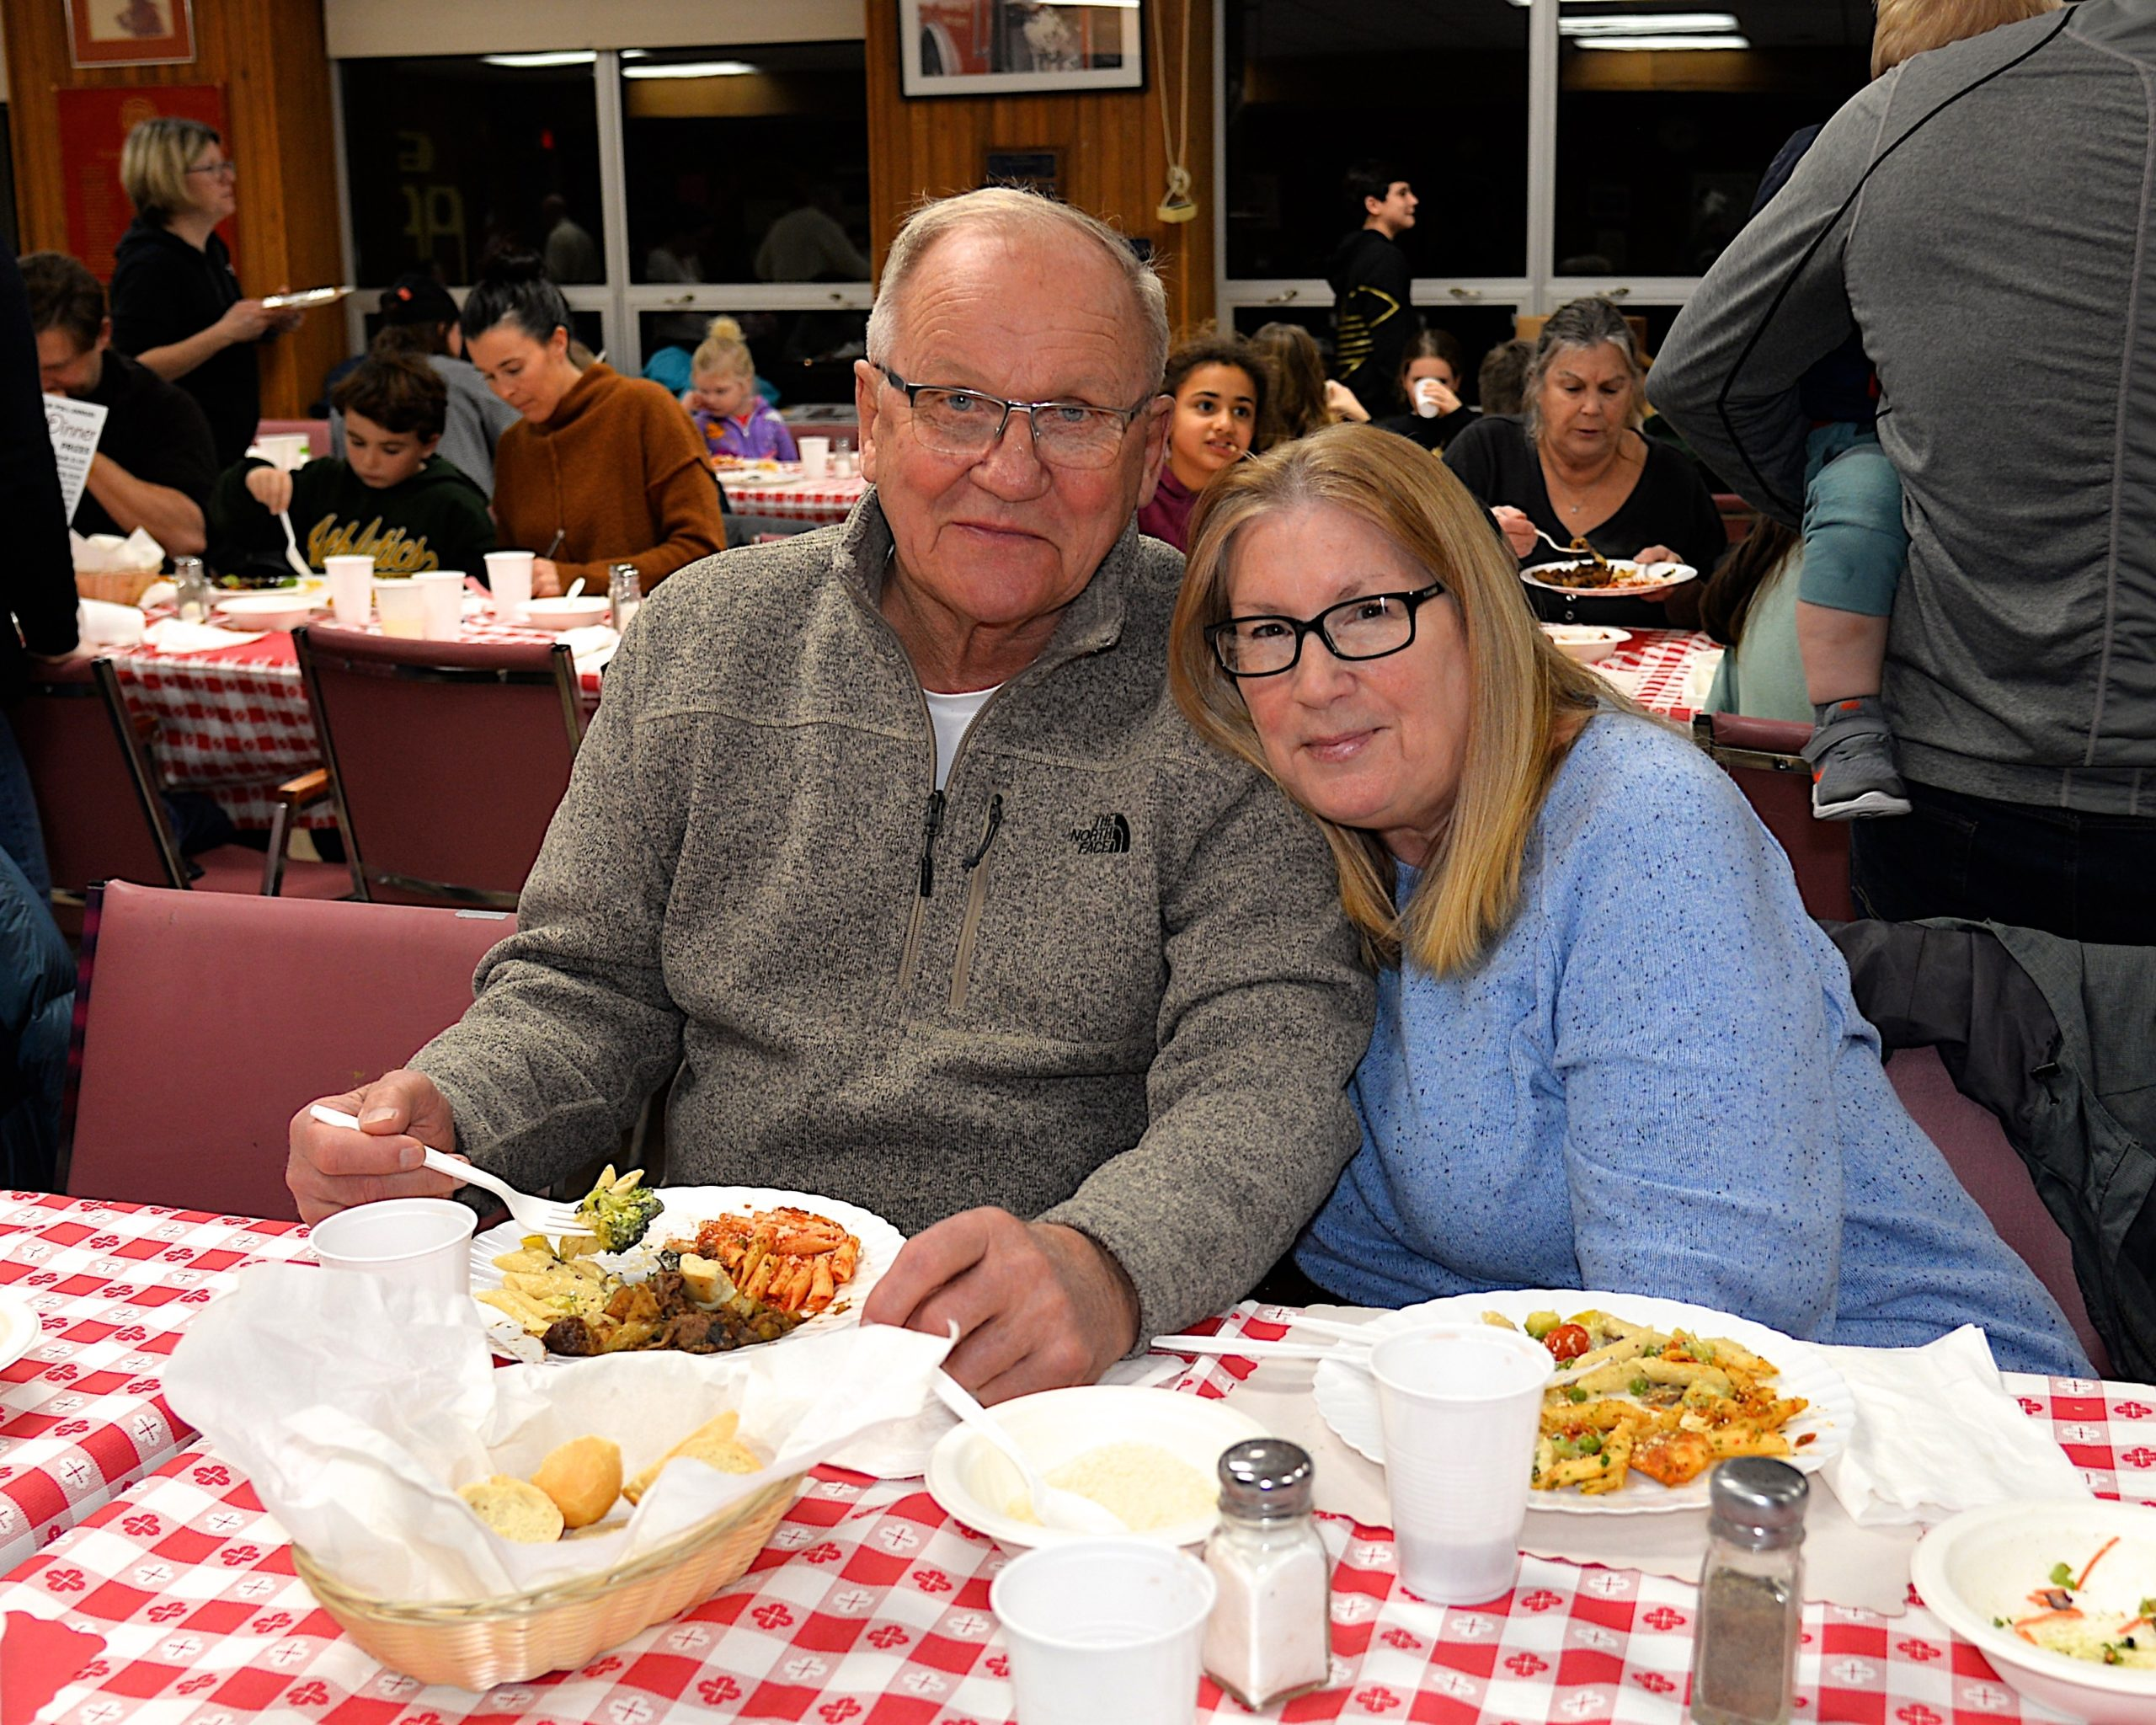 A pasta dinner fundraiser took place at the Montauk firehouse on Saturday to benefit the Robert R. Fisher scholarship fund. Dick Swanson and Nancy Stewart were there to support the cause. KYRIL BROMLEY